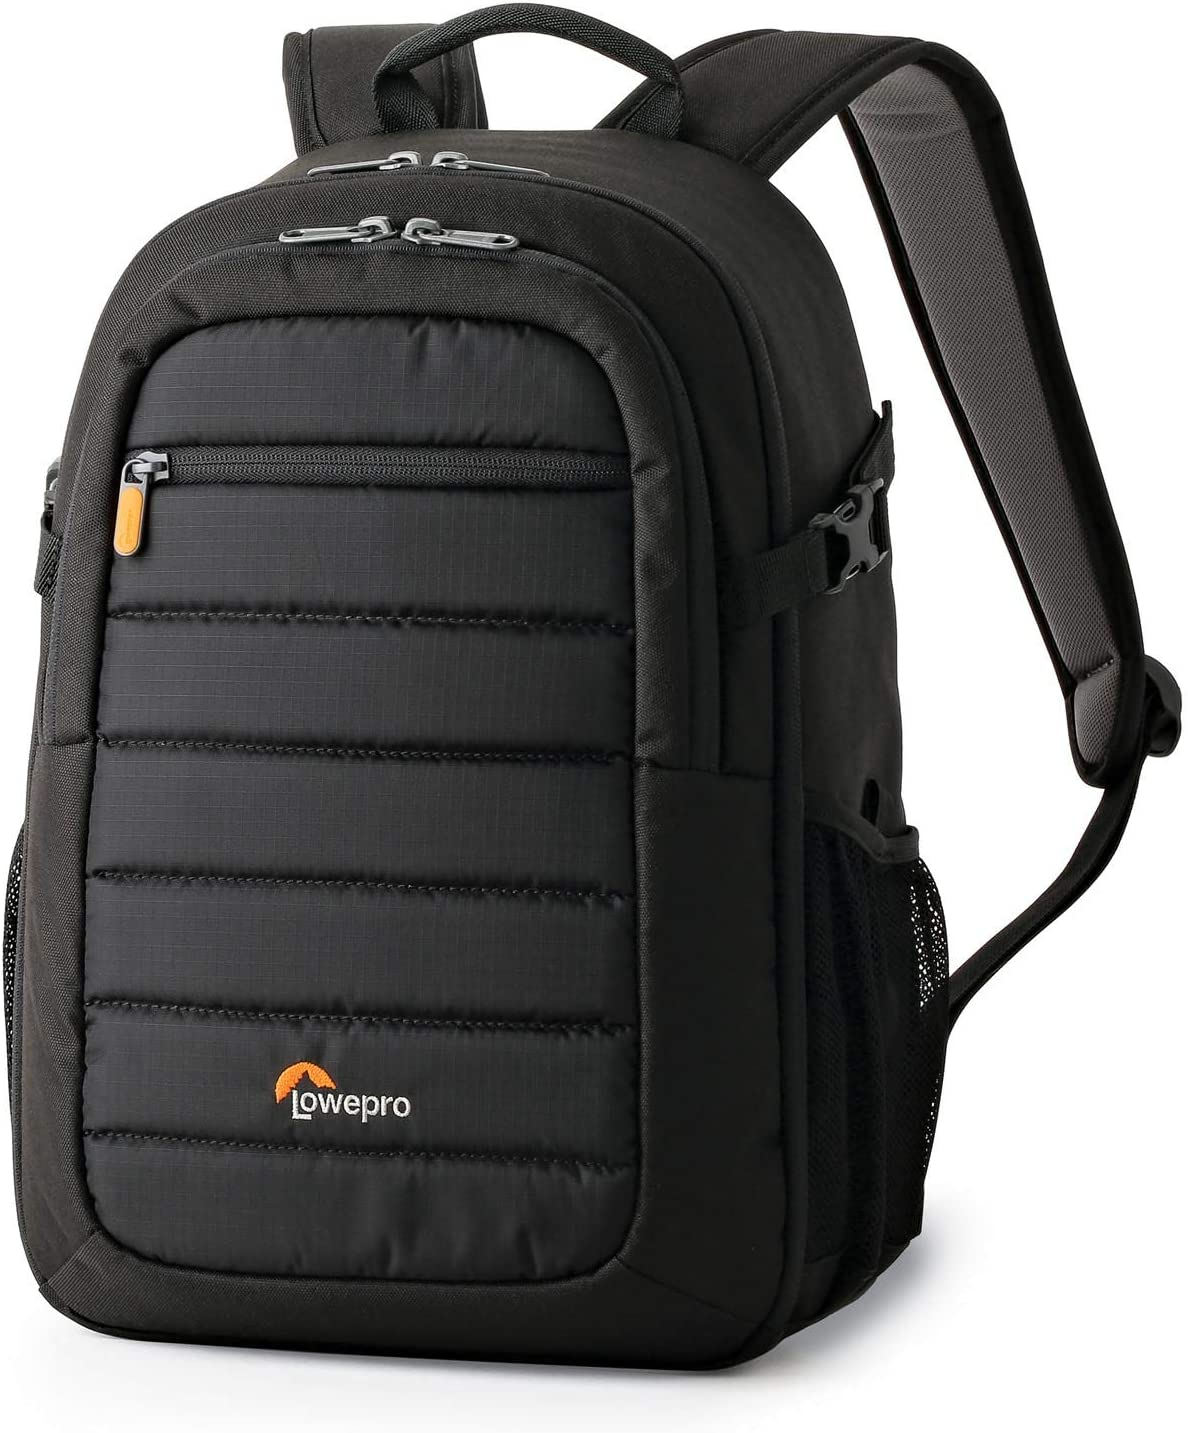 Lowepro PLECAK Tahoe BP 150 Black: Amazon.es: Electrónica